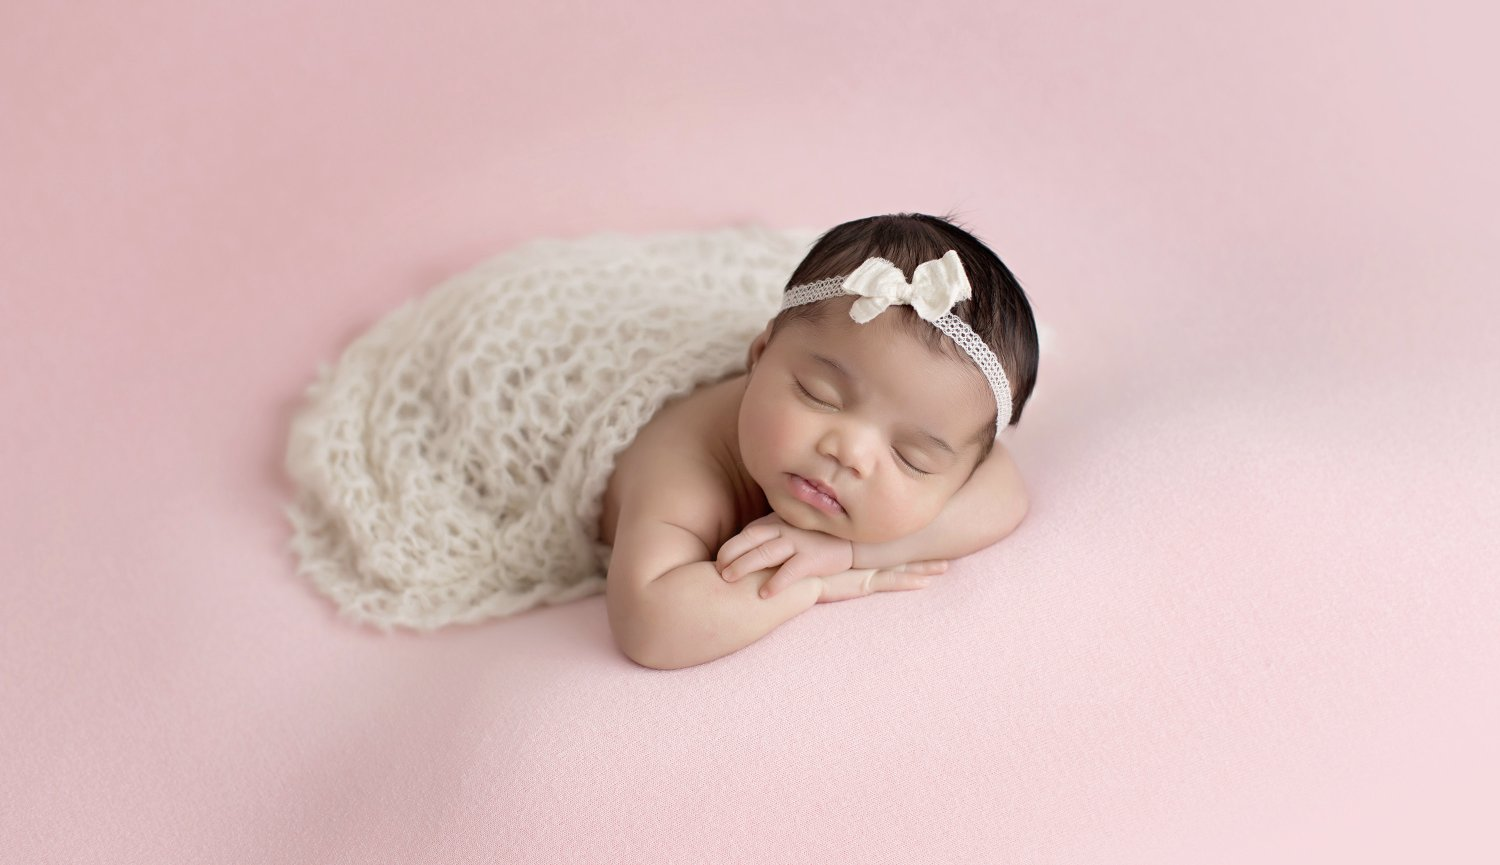 Click here to contact the studio for pricing and availability